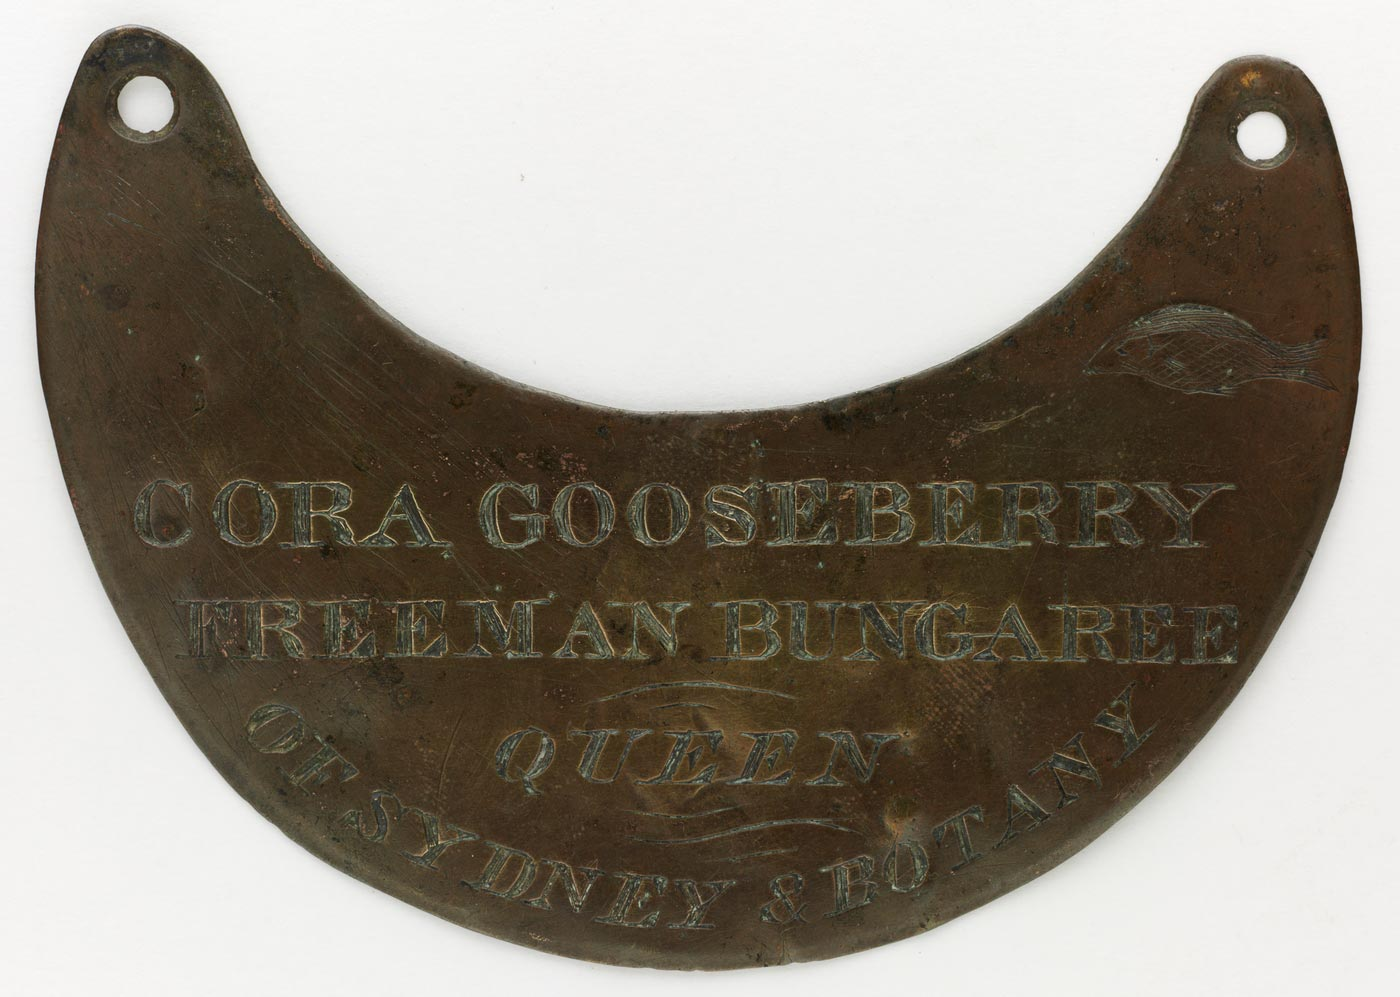 Engraved breastplate awarded to 'Cora Gooseberry'